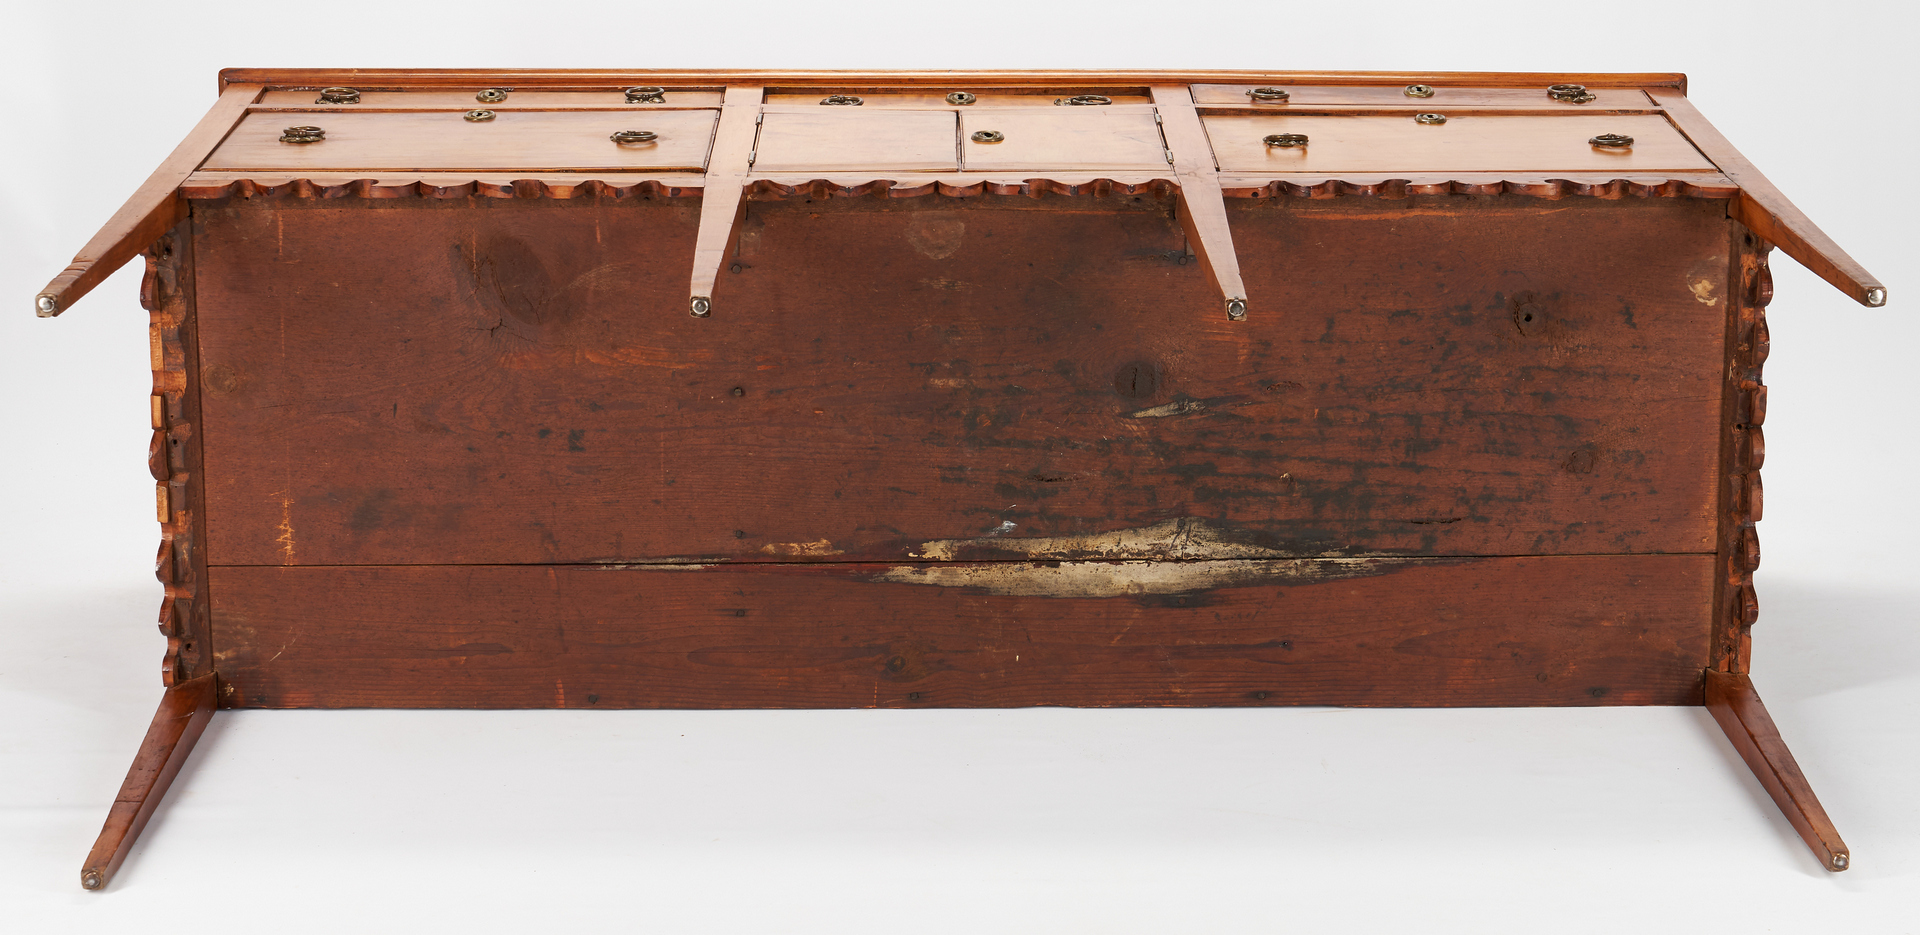 Lot 191: Southern Maple & Pine Federal Huntboard